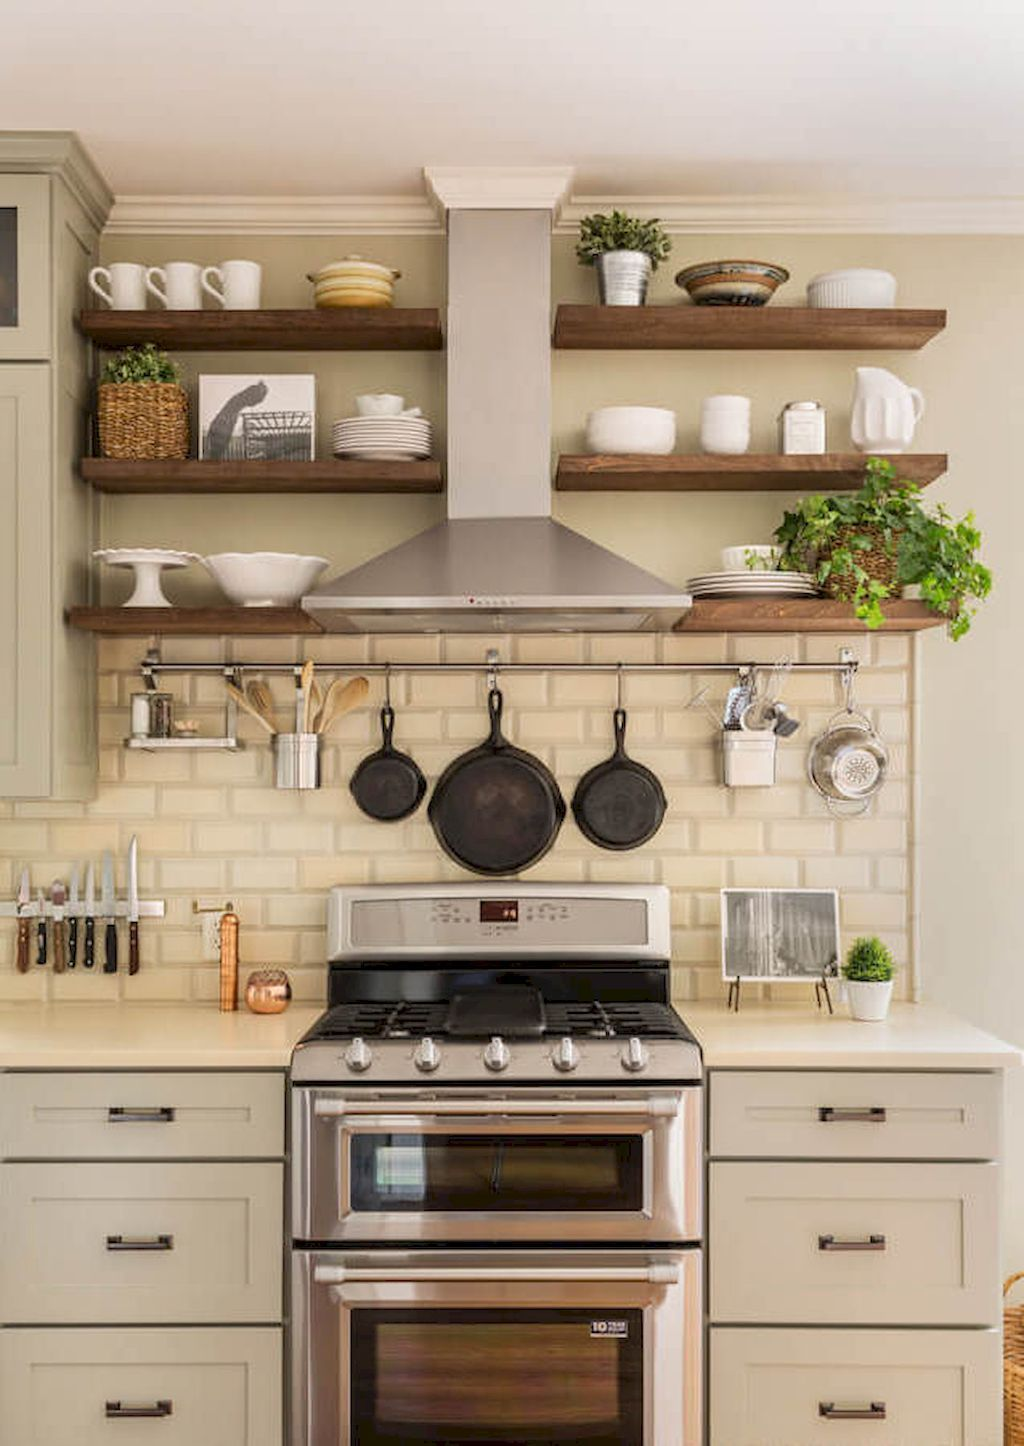 100 stunning farmhouse kitchen ideas on a budget 54 kitchen remodel small farmhouse kitchen on farmhouse kitchen on a budget id=91895